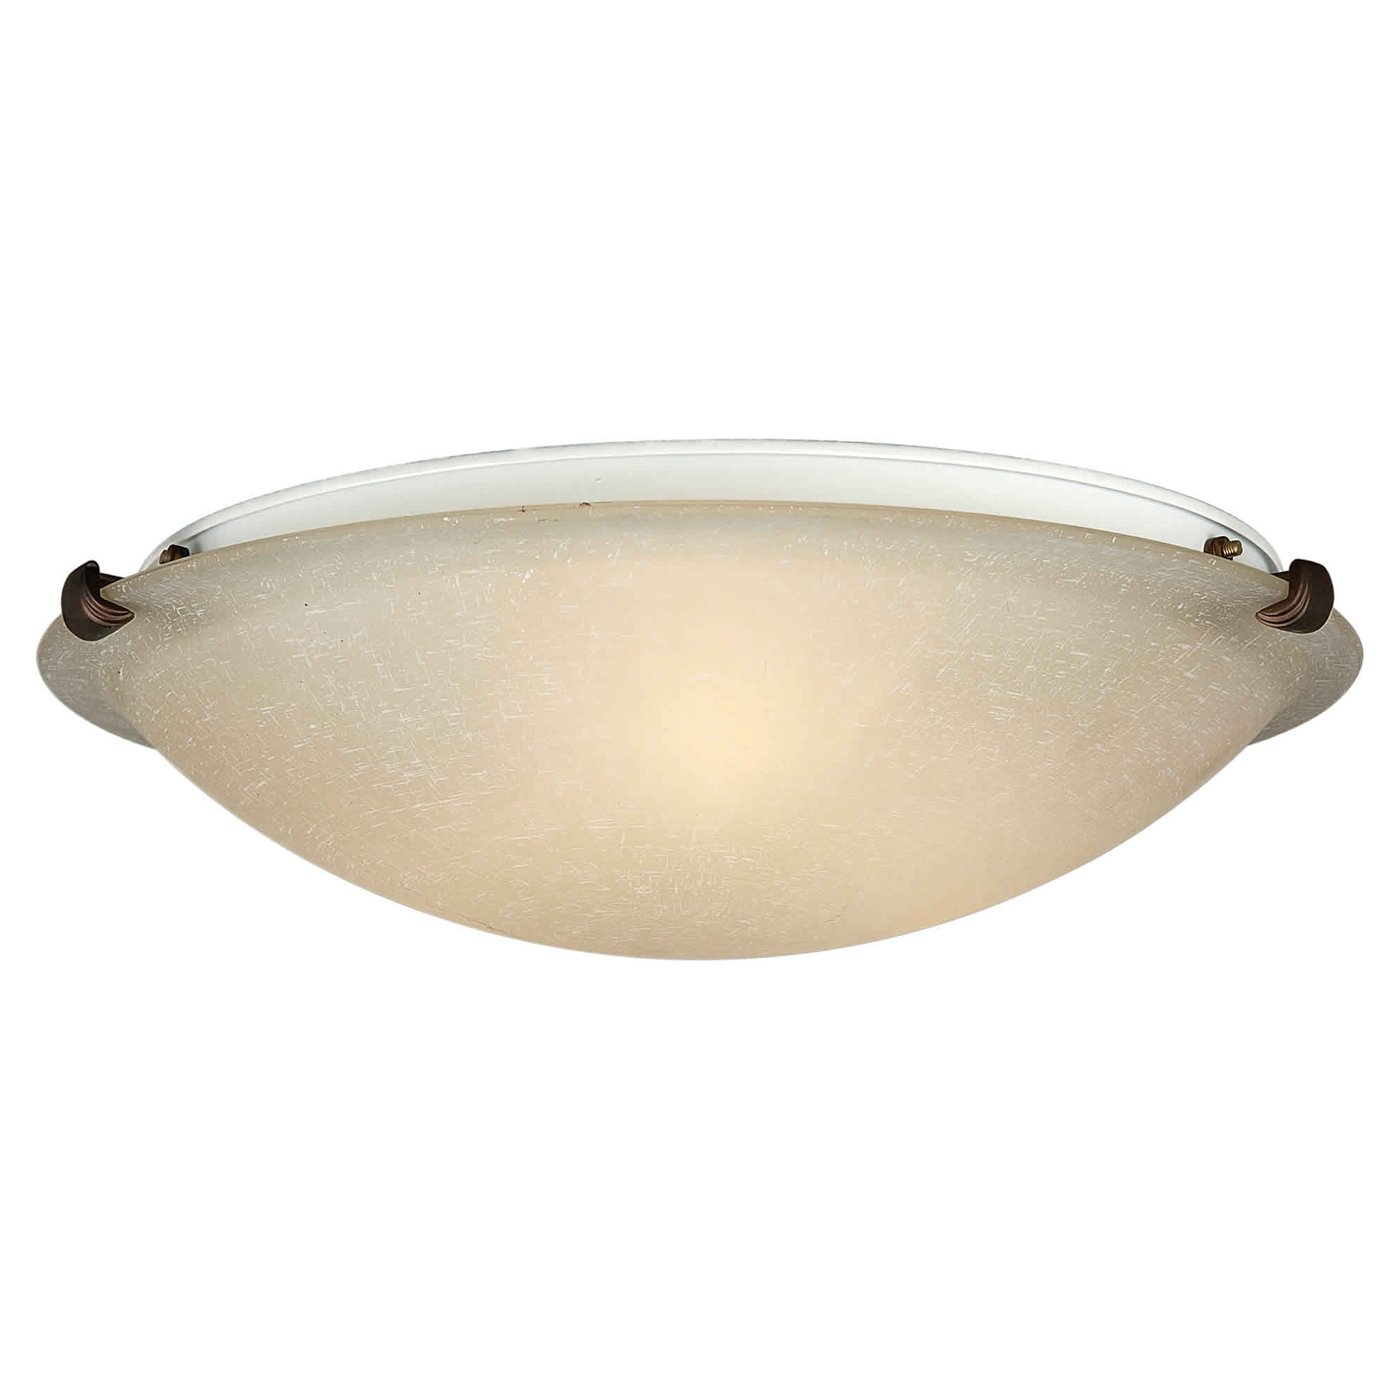 Flush mount fluorescent kitchen lighting photo - 2